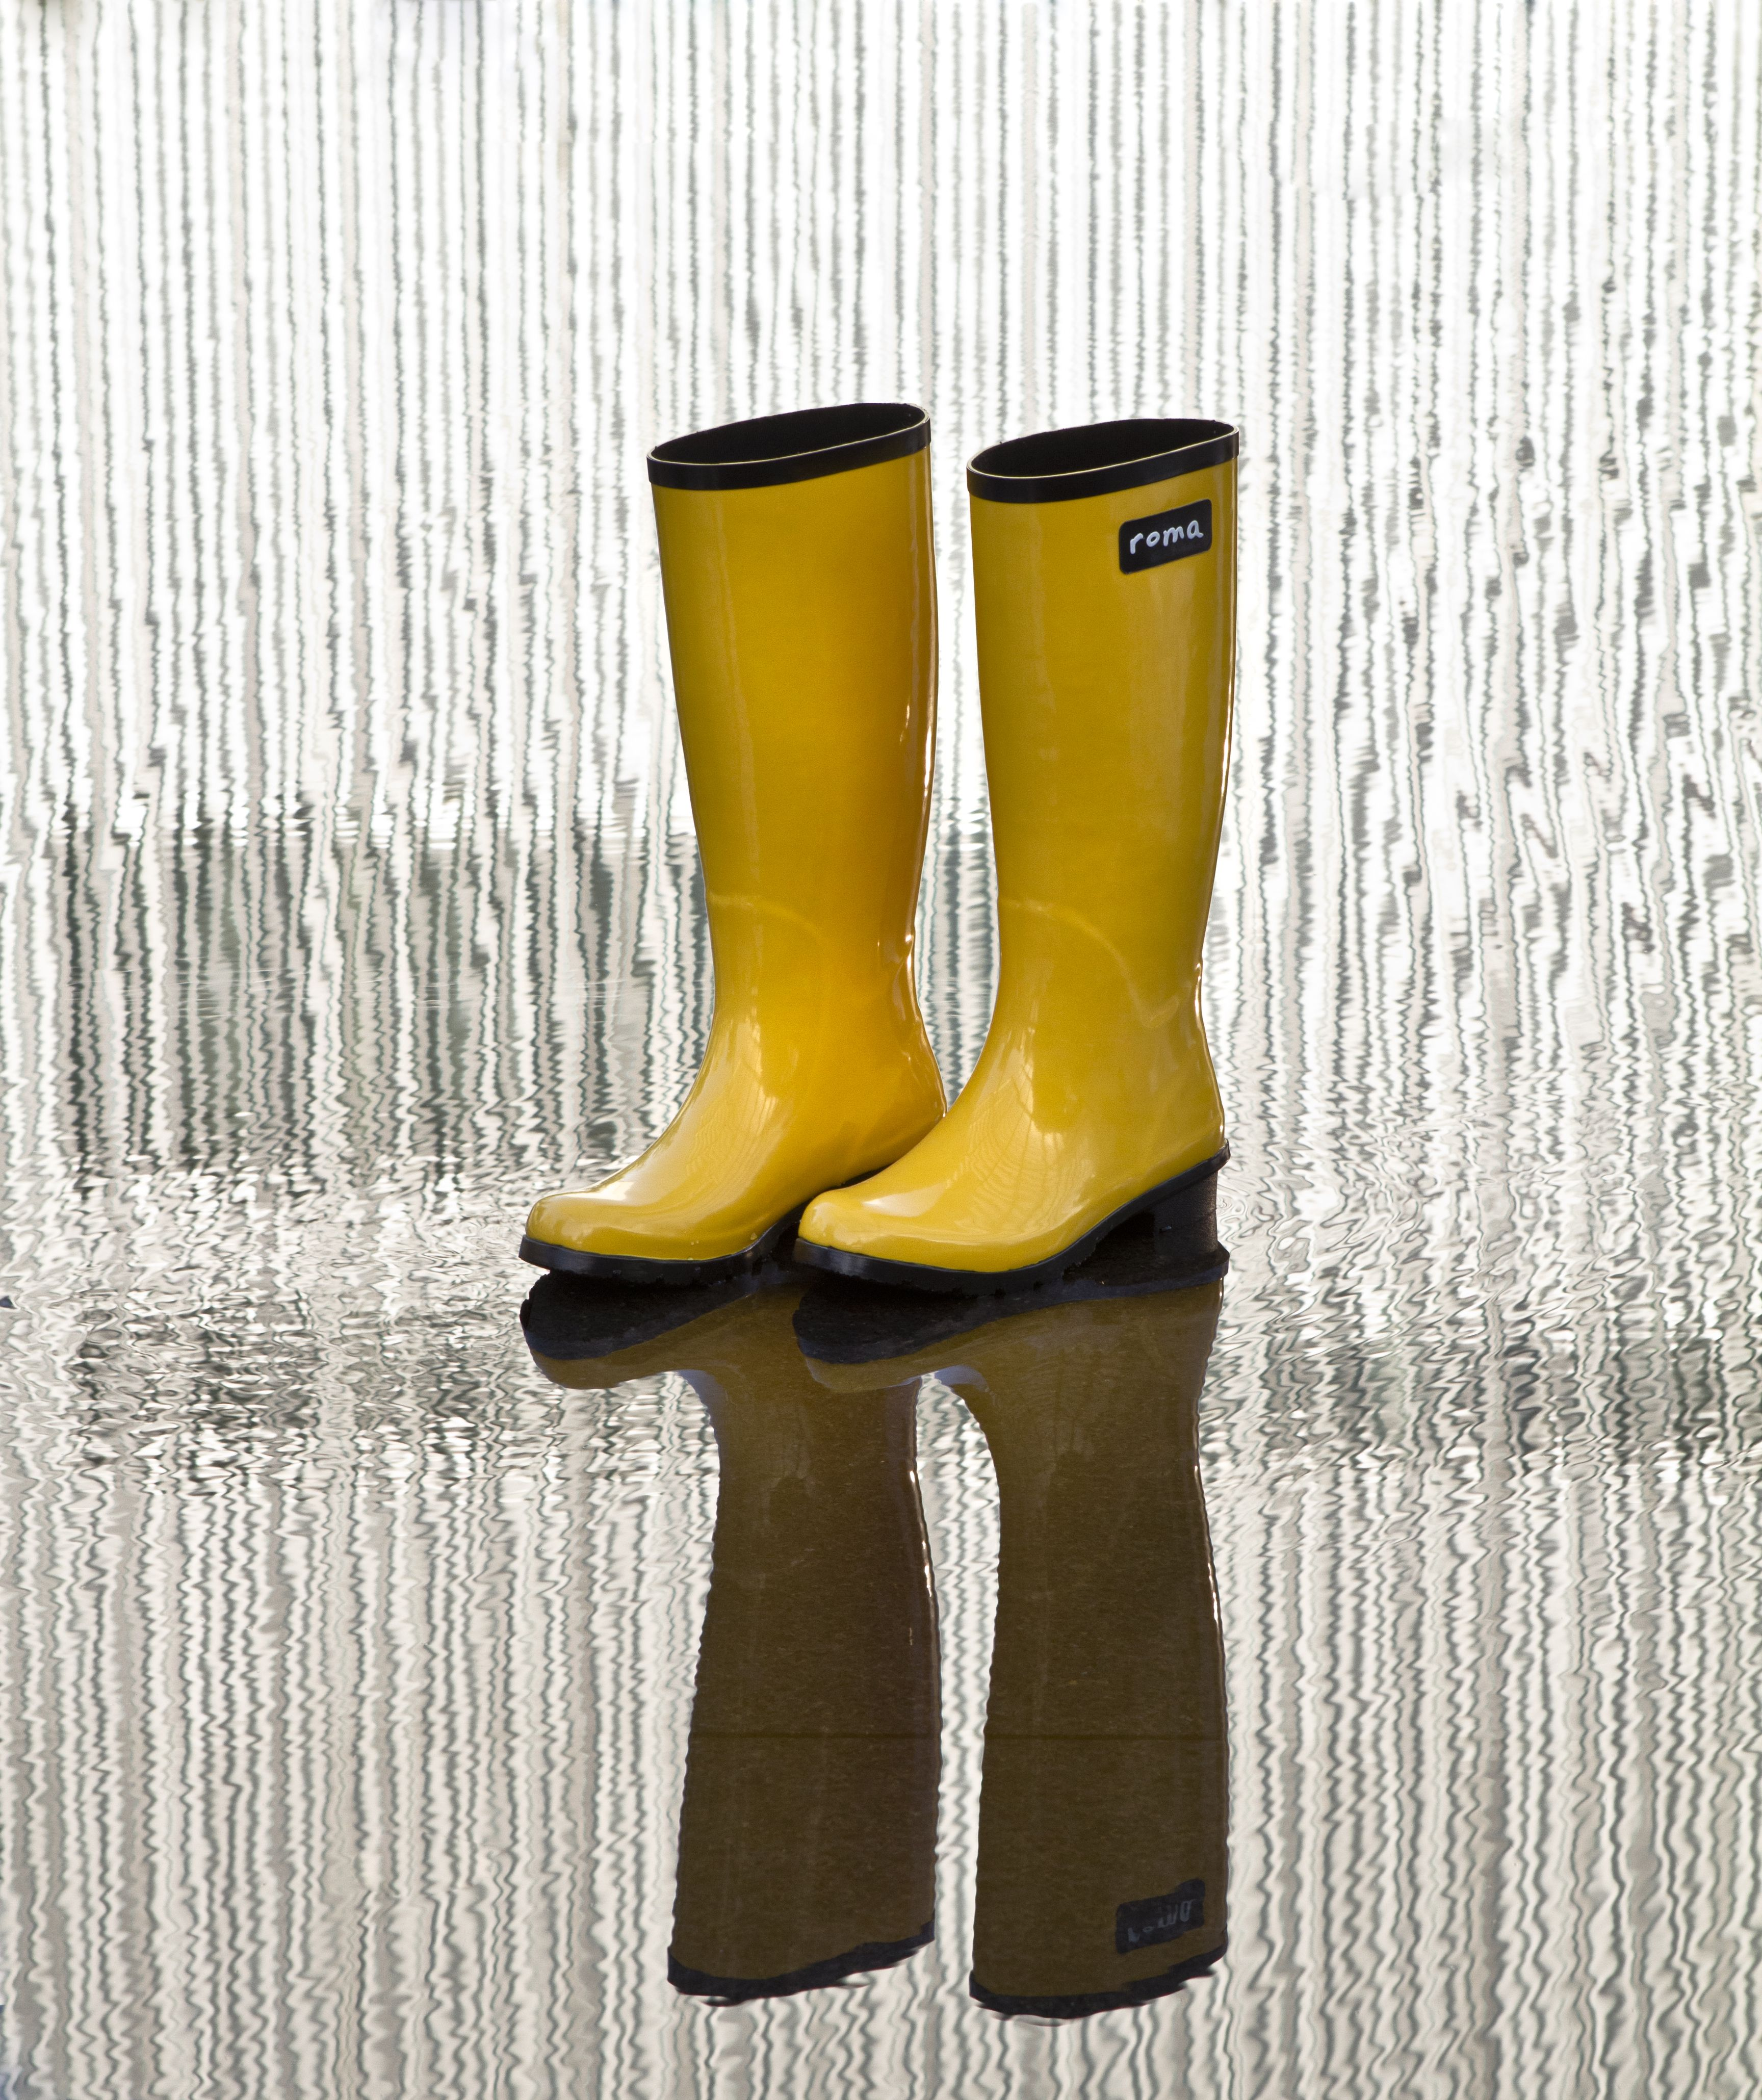 Brighten up a rainy day with a pair of #romaboots in glossy #yellow